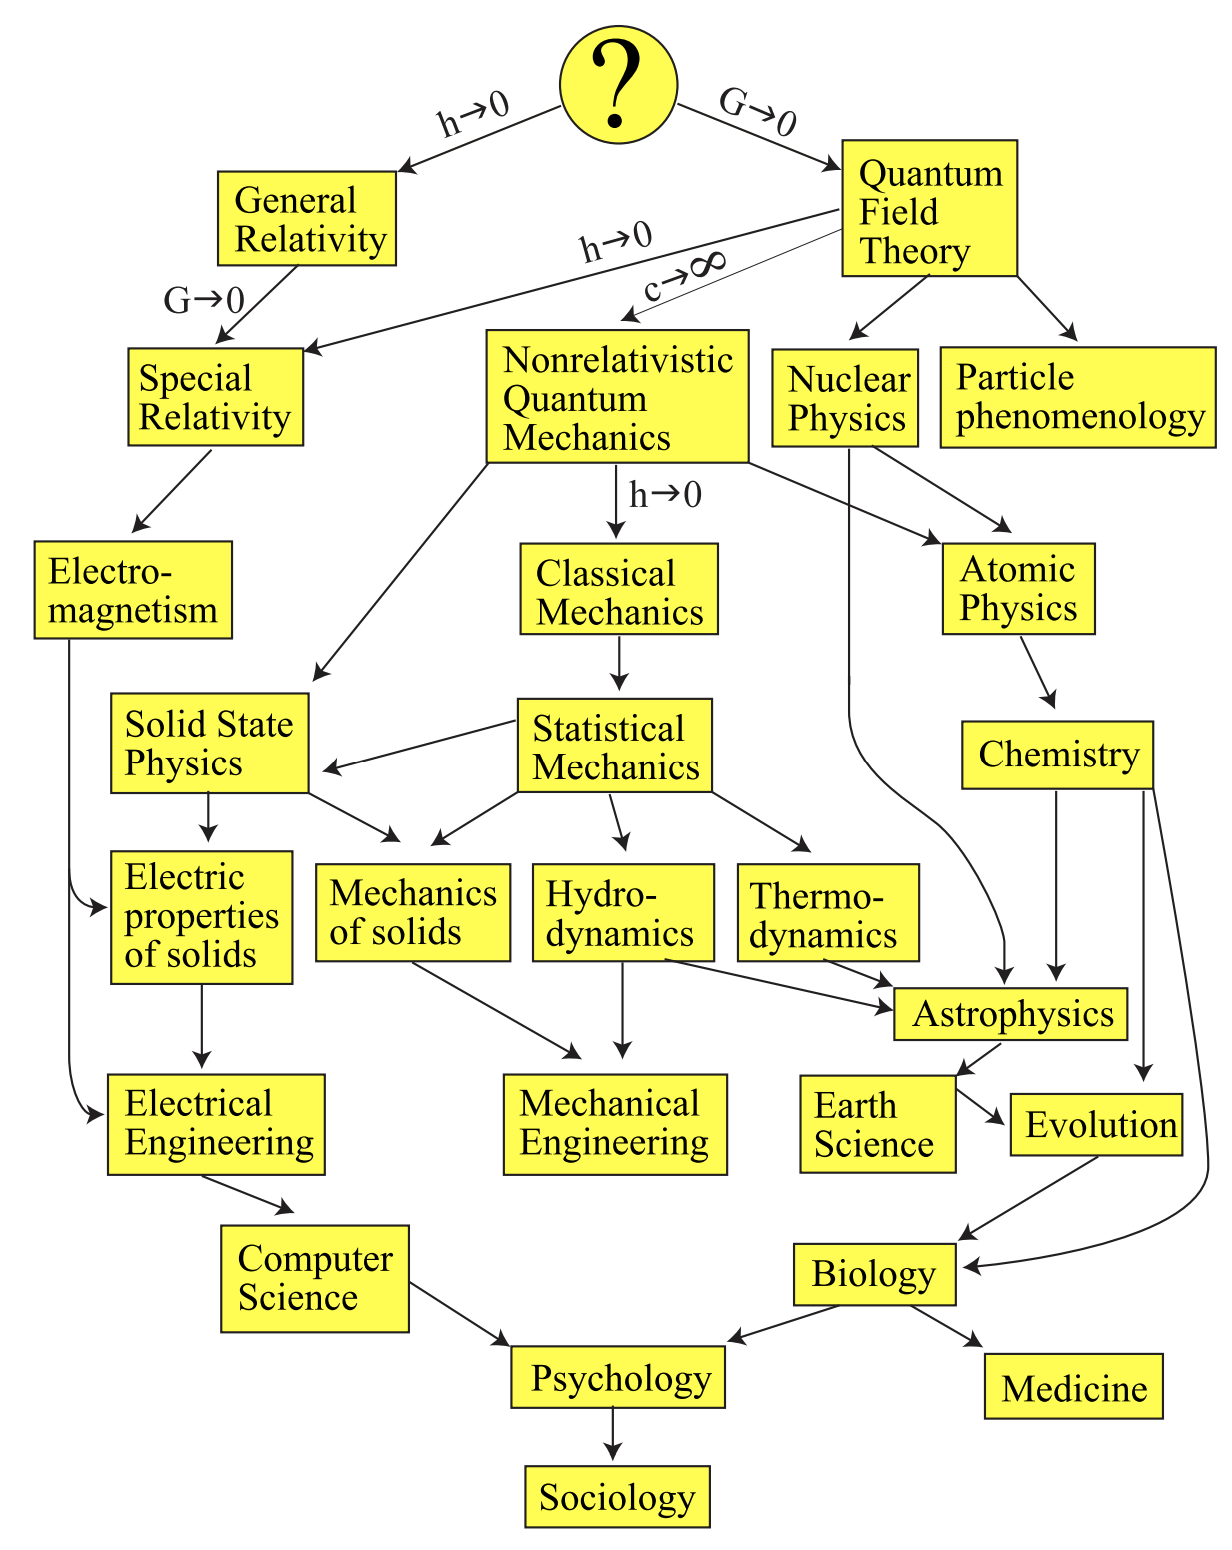 Family tree of theories (Tegmark, 2007)